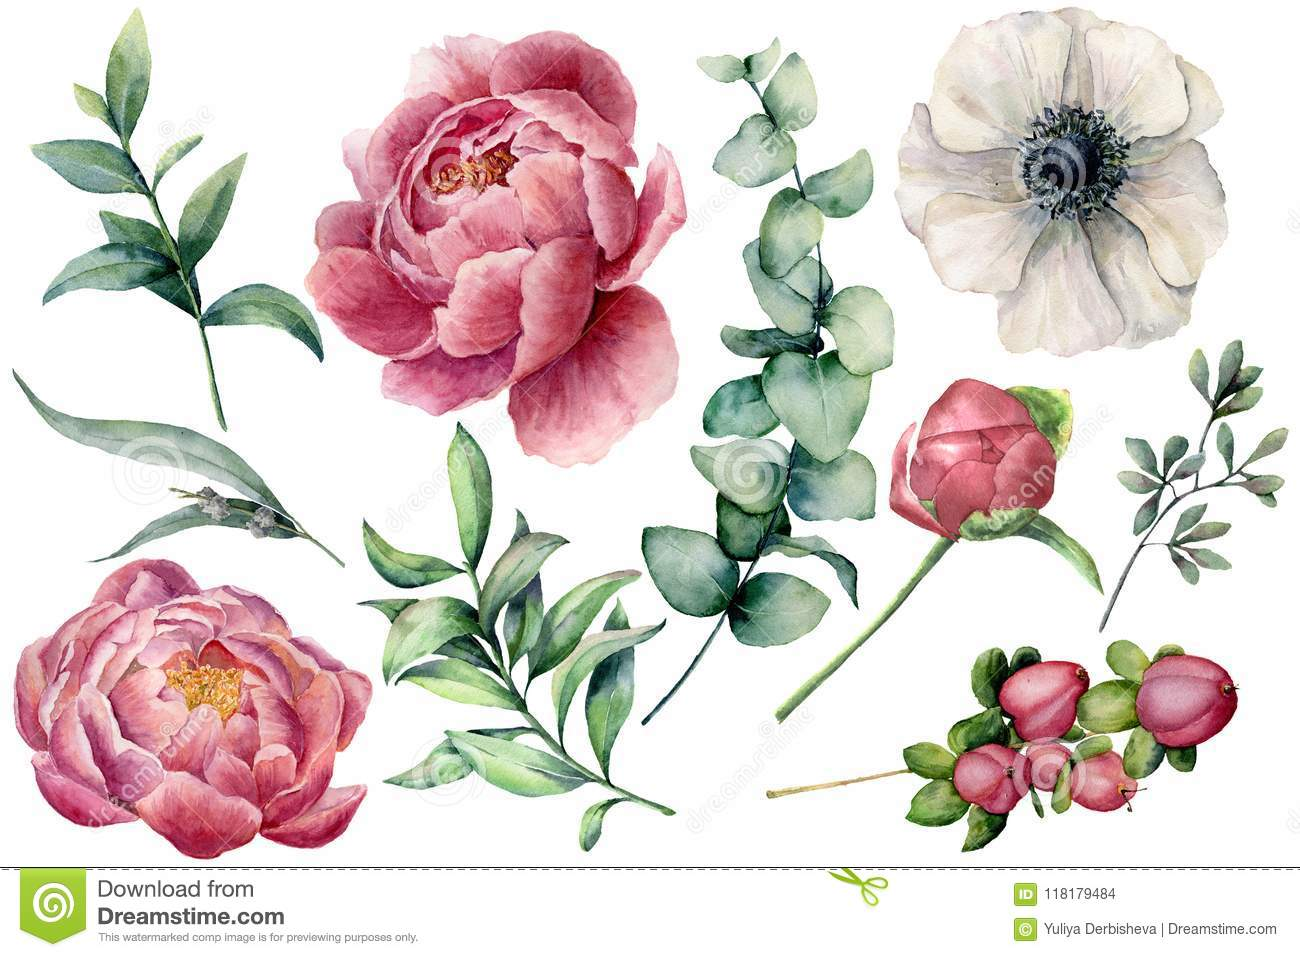 Watercolor floral set with flowers and eucalyptus branch. Hand painted peony, anemone, berries and leaves isolated on